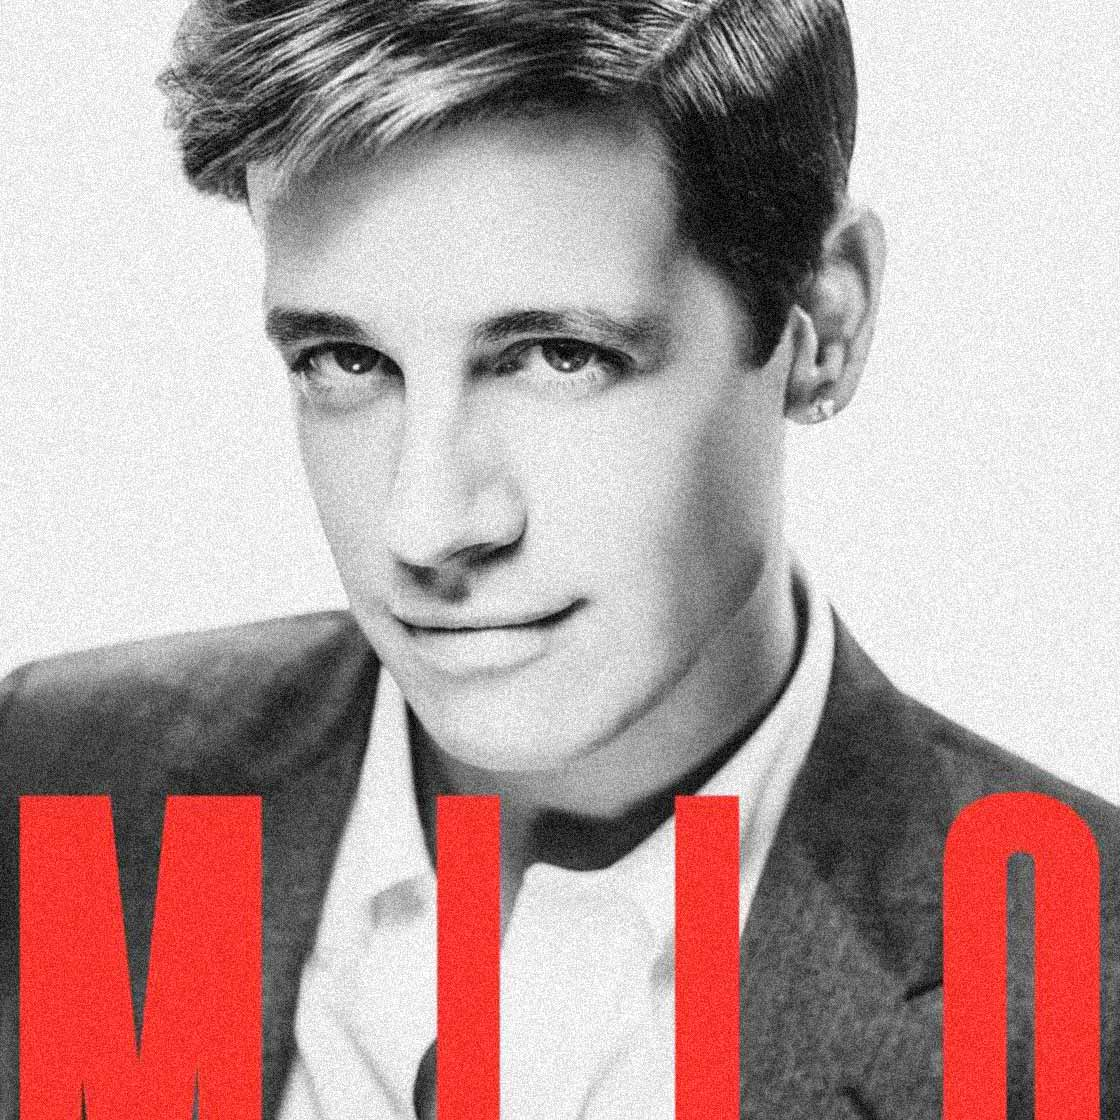 Dangerous, by Milo Yiannopoulos (detail of book cover)